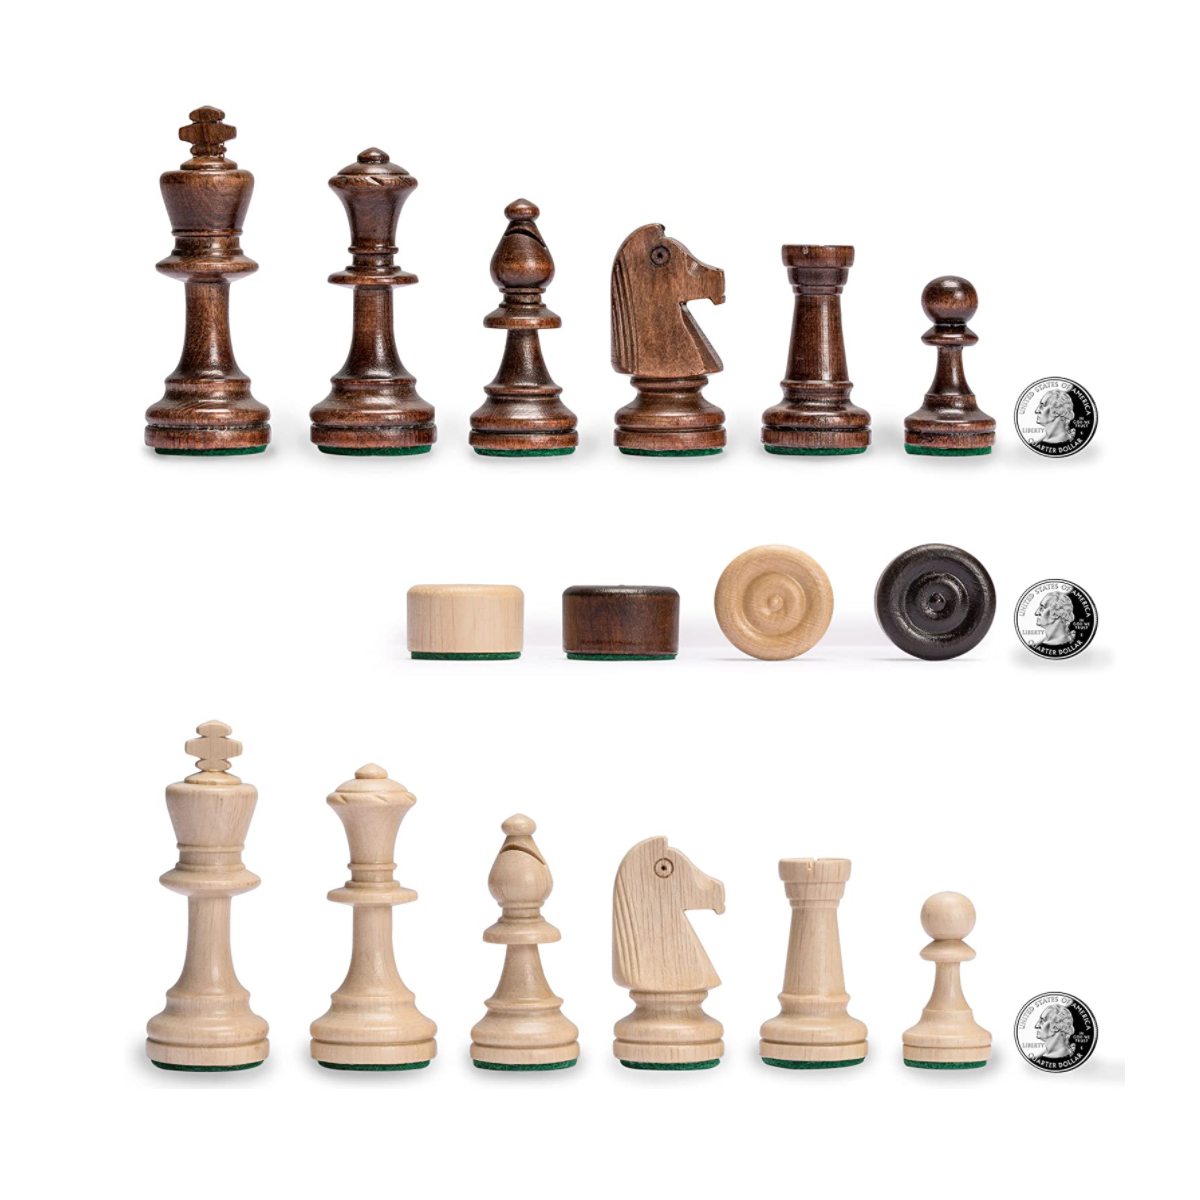 Husaria Large European Wooden Chess and Checkers Multi-Game Set, 19.7 Inches - with Foldable Board, Handcrafted Playing Pieces and Felt-Lined Storage